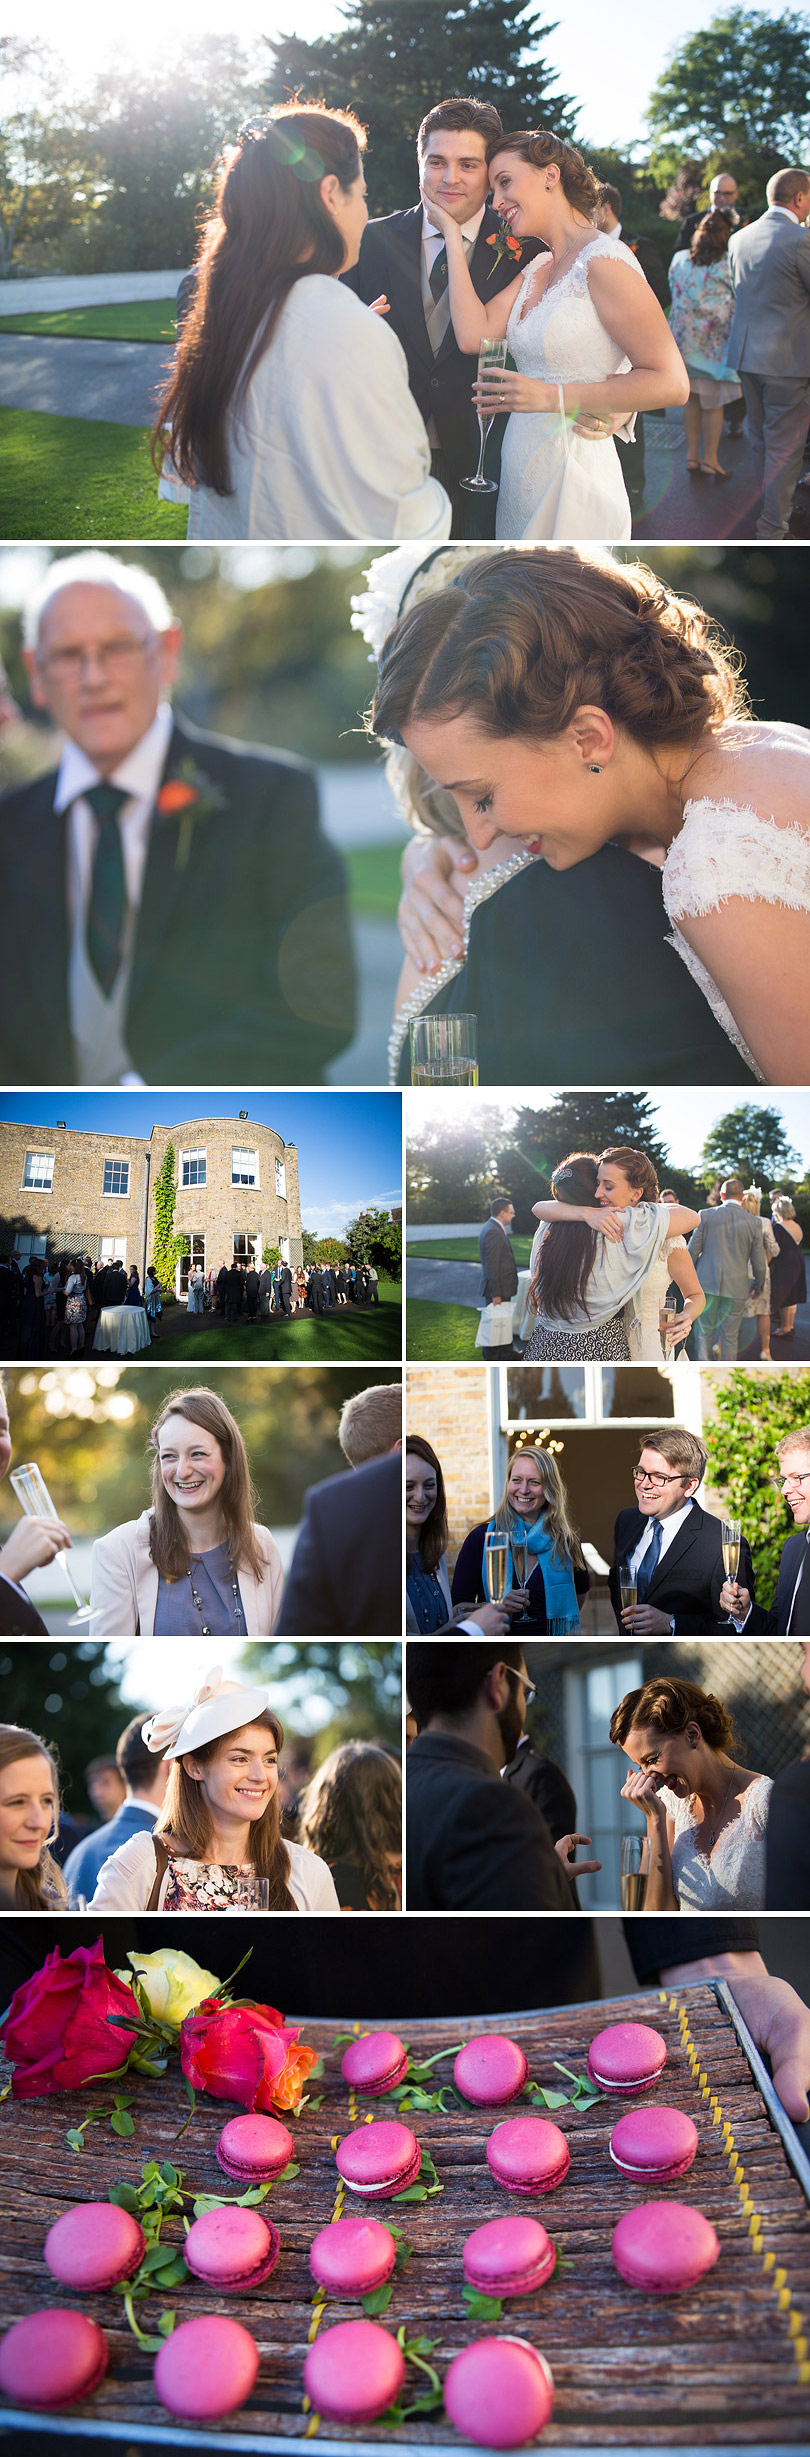 L&I_Cambridge-Cottage-Kew-Gardens-Wedding_14.jpg